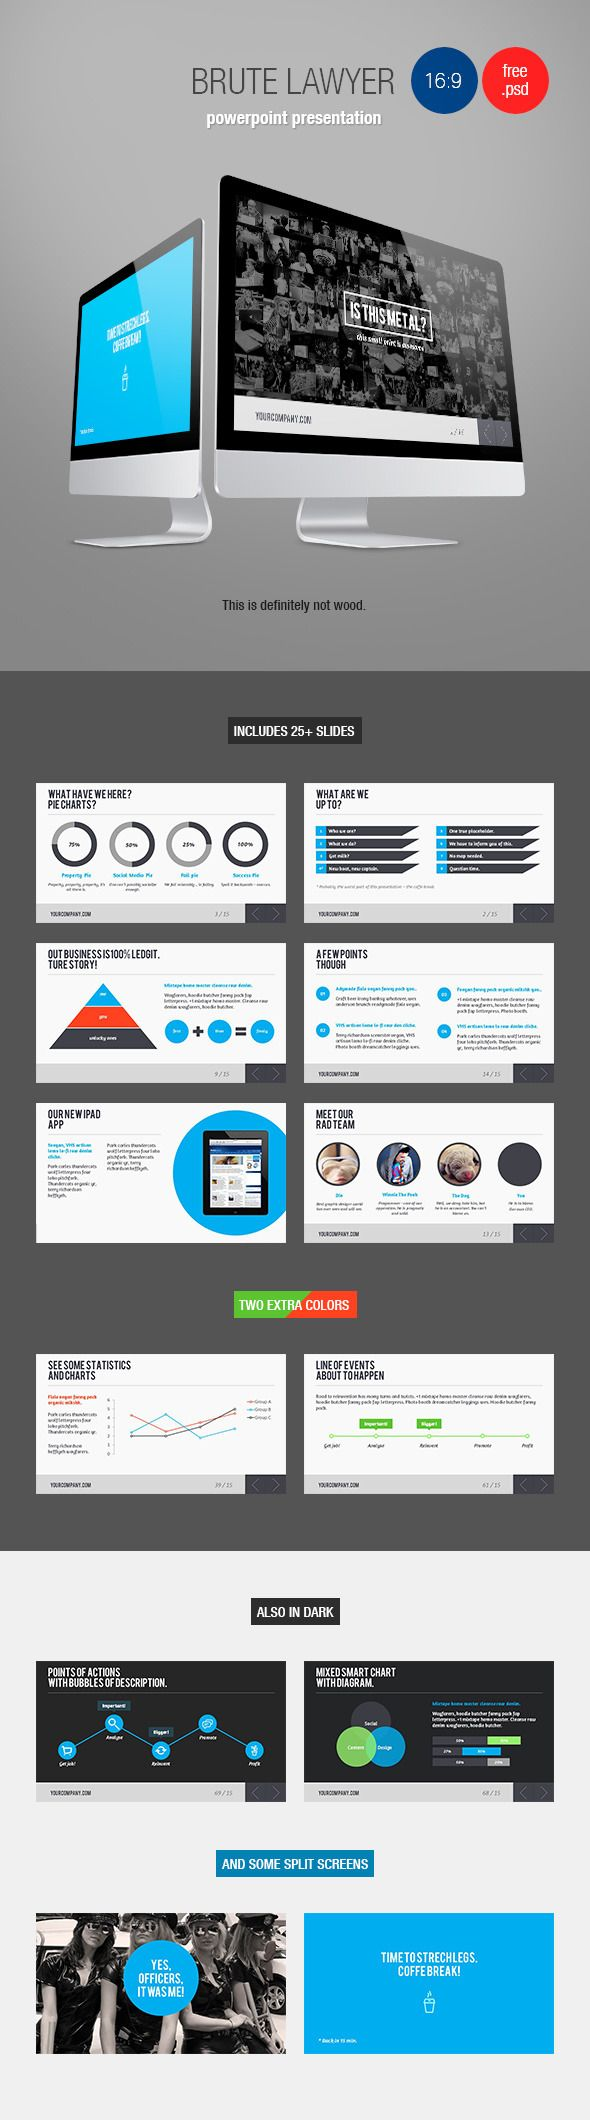 10 best Finance PowerPoint Templates images on Pinterest | Ppt ...